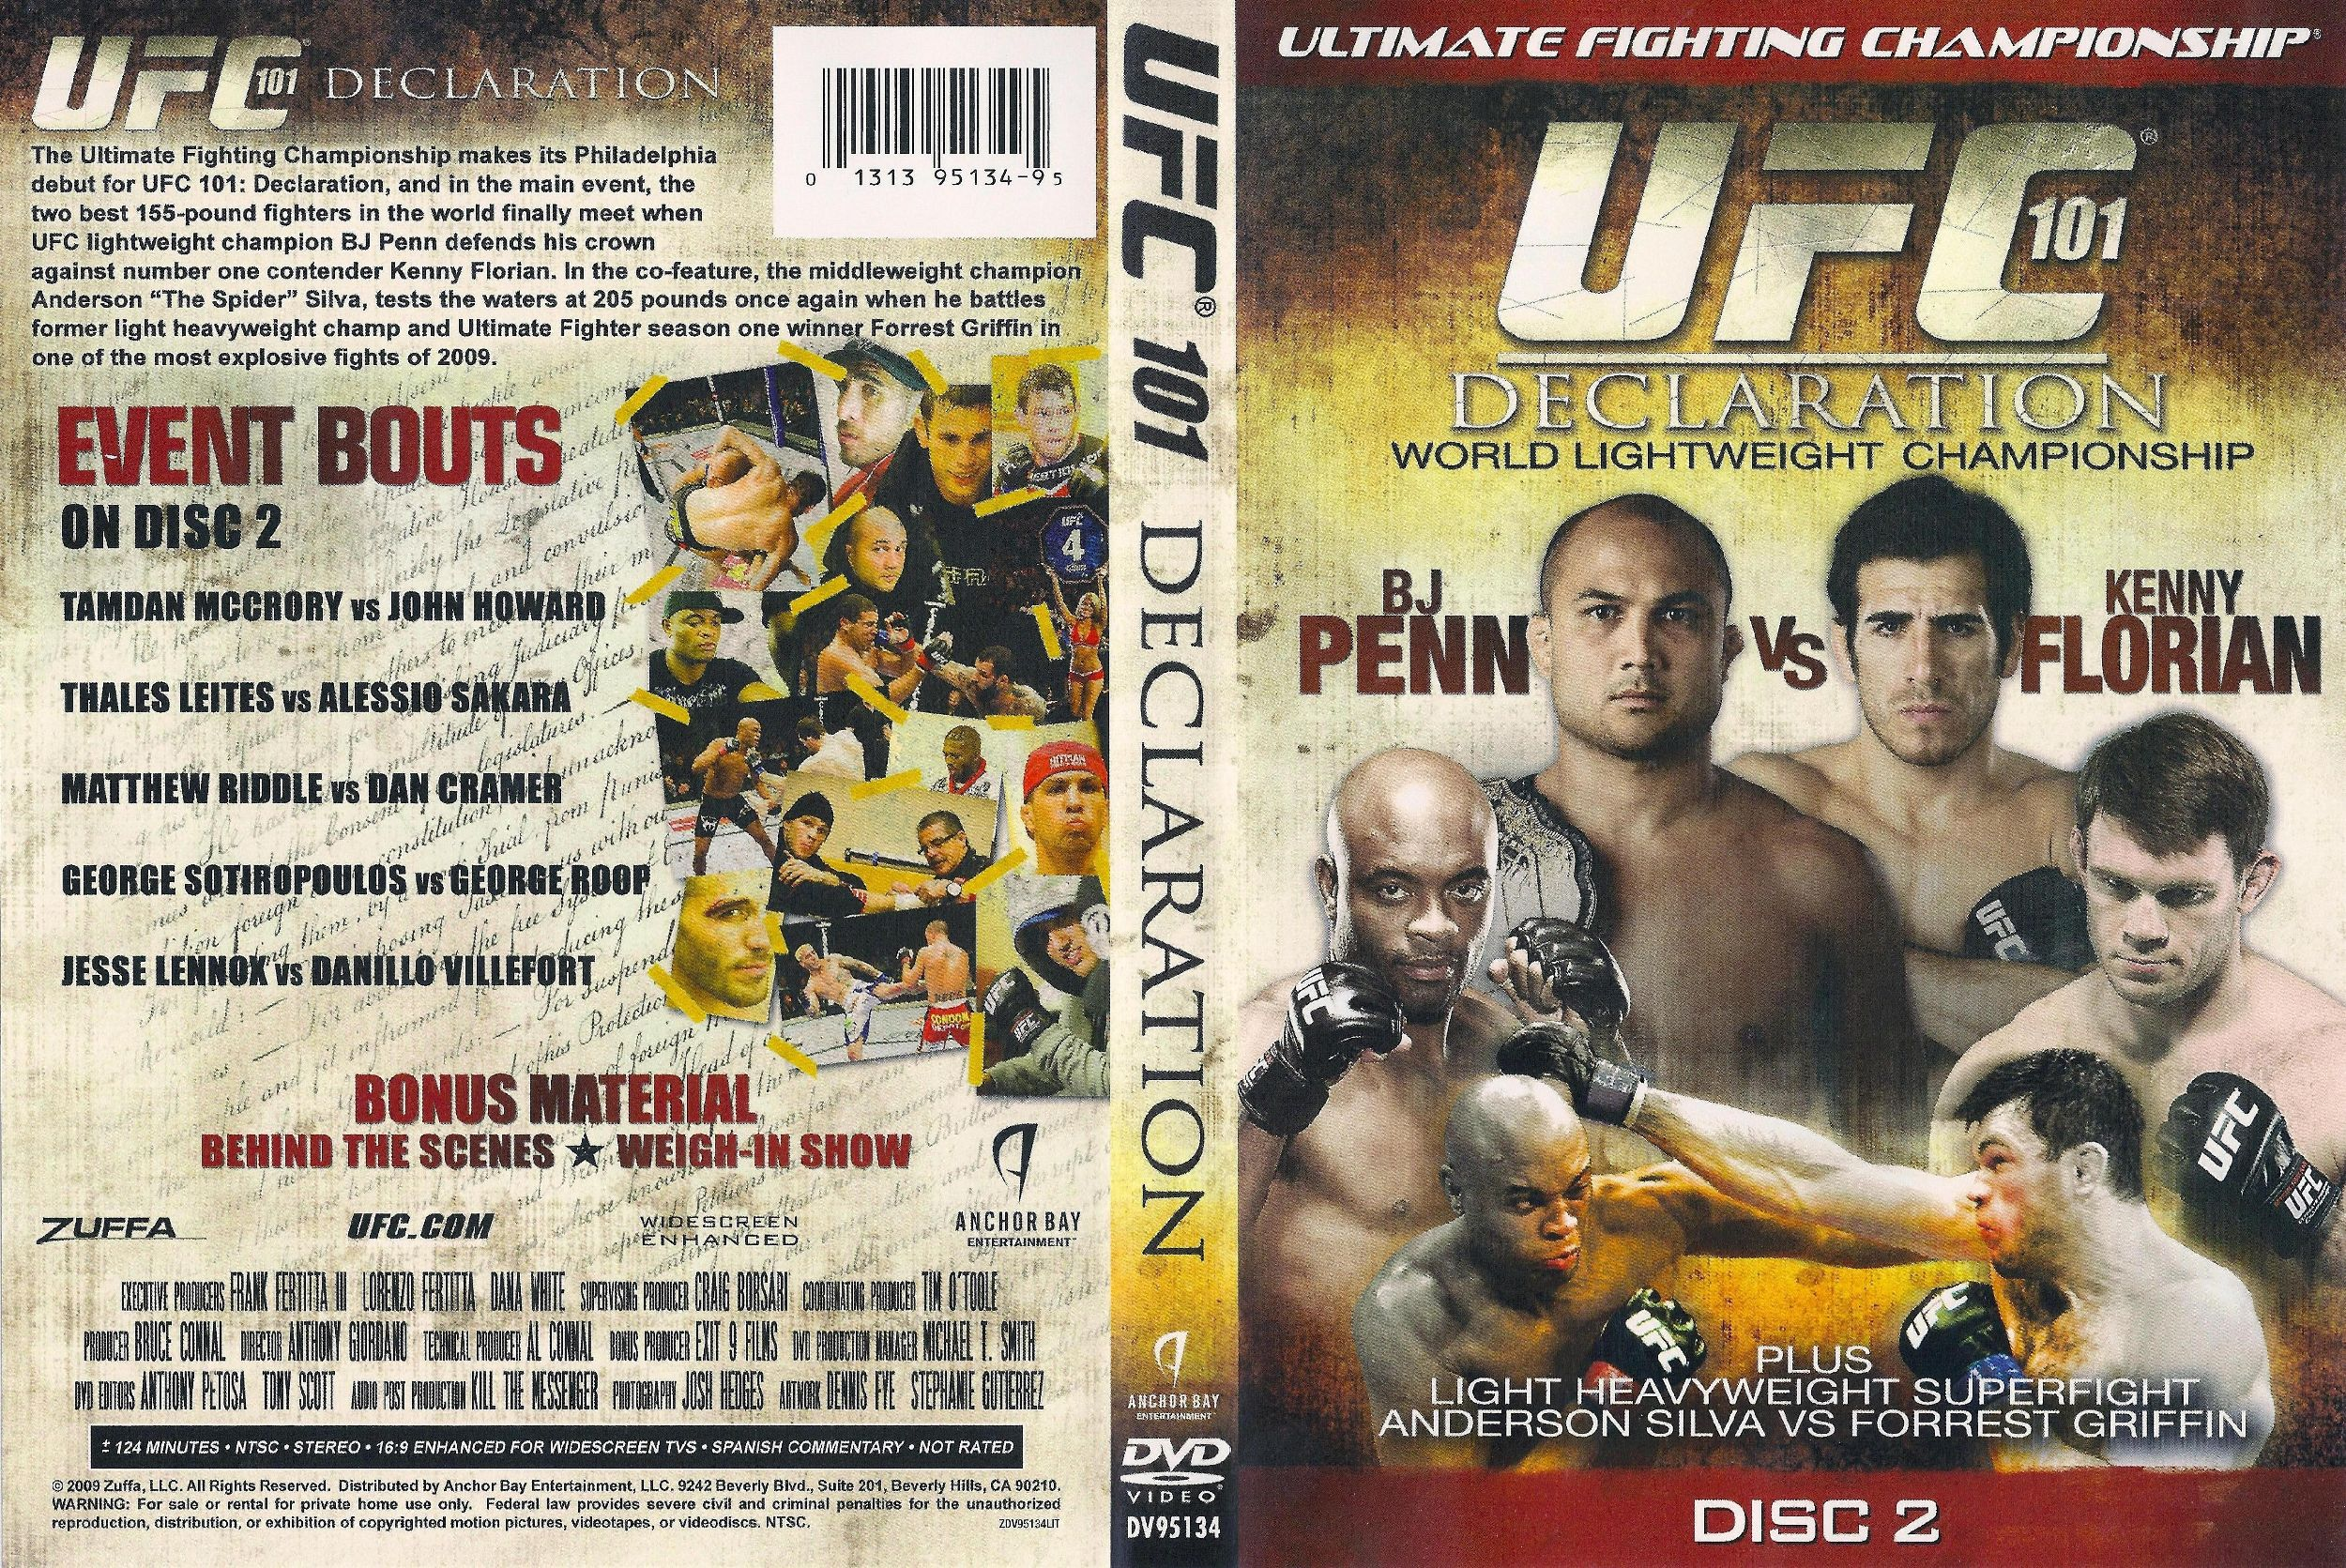 Ufc_101_Declaration_Disc_2_R1-[cdcovers_cc]-front